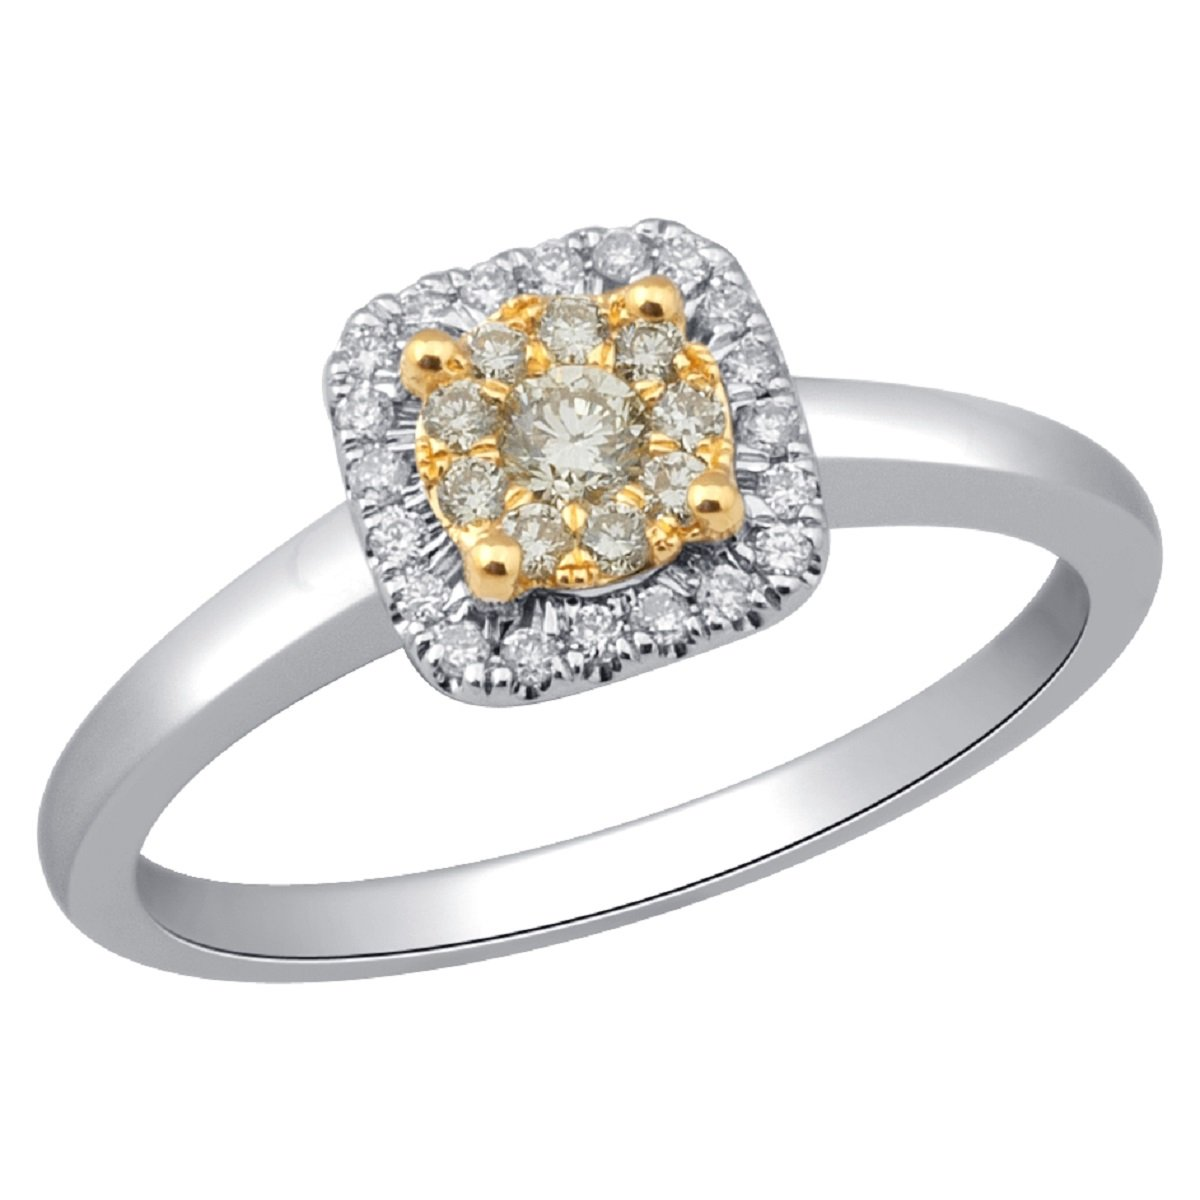 Designer Collection, Rare, Jewel Ivy 14K White Gold Ring with Diamonds and Yellow Diamonds,Fashion, Exotic, Royal, Best Gift For Wife, Girlfriend, Friend, Size- US-7-7.25